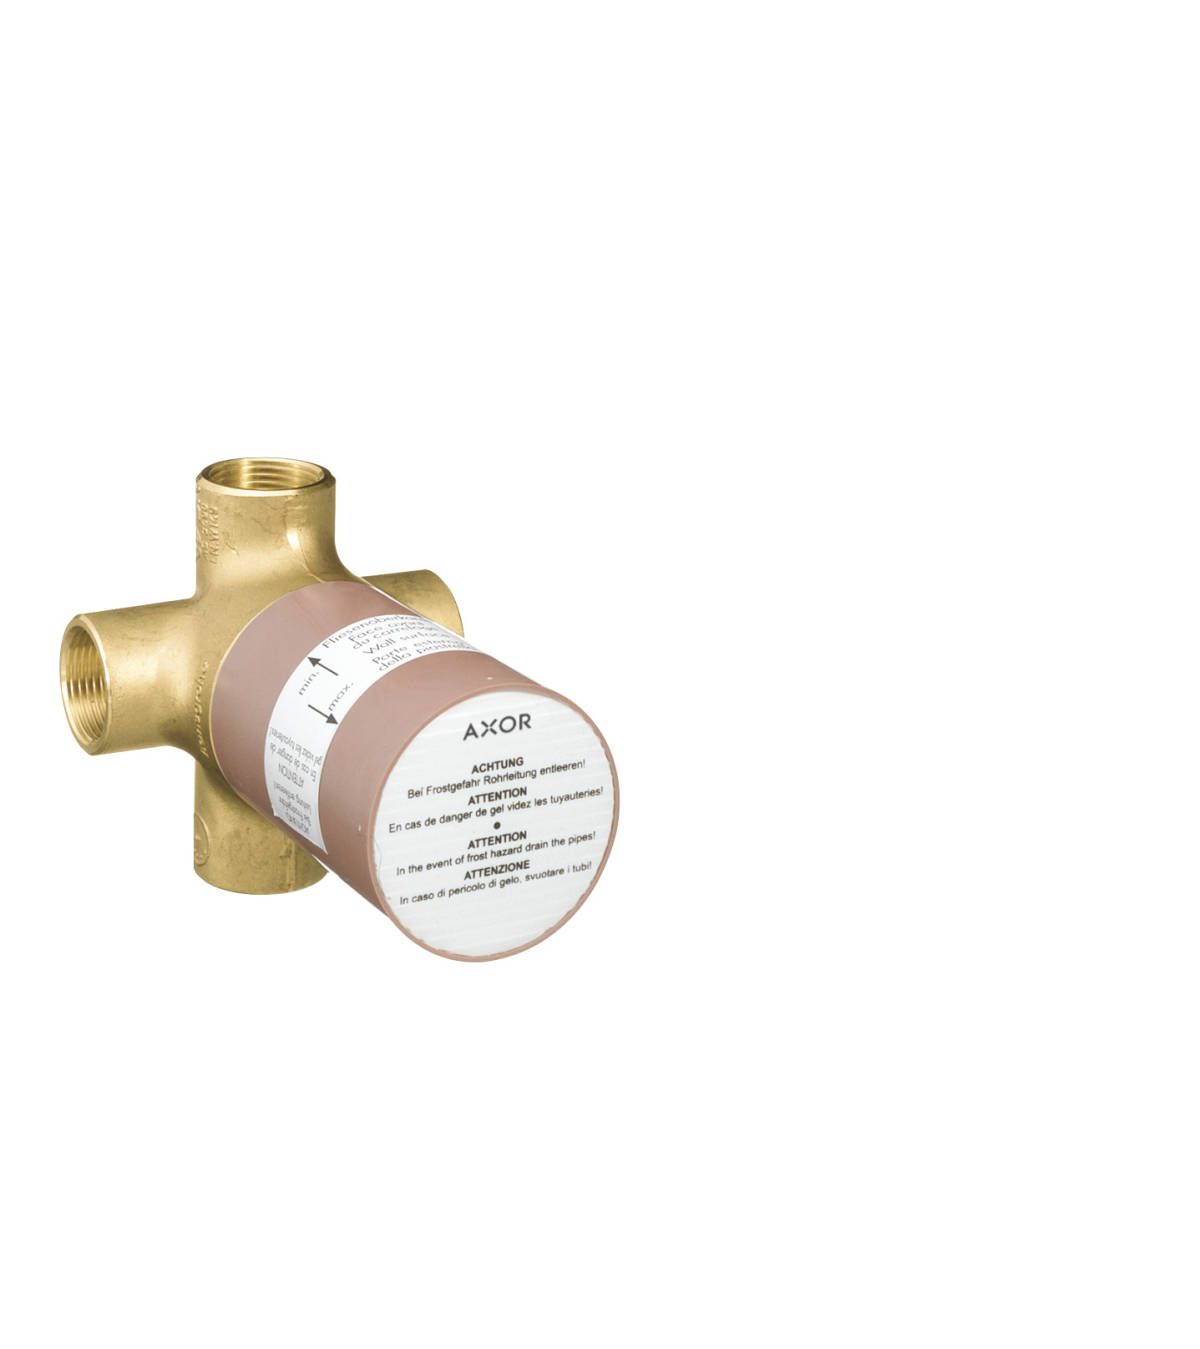 Basic set for Quattro four-way diverter valve for concealed installation, n.a., 16930180